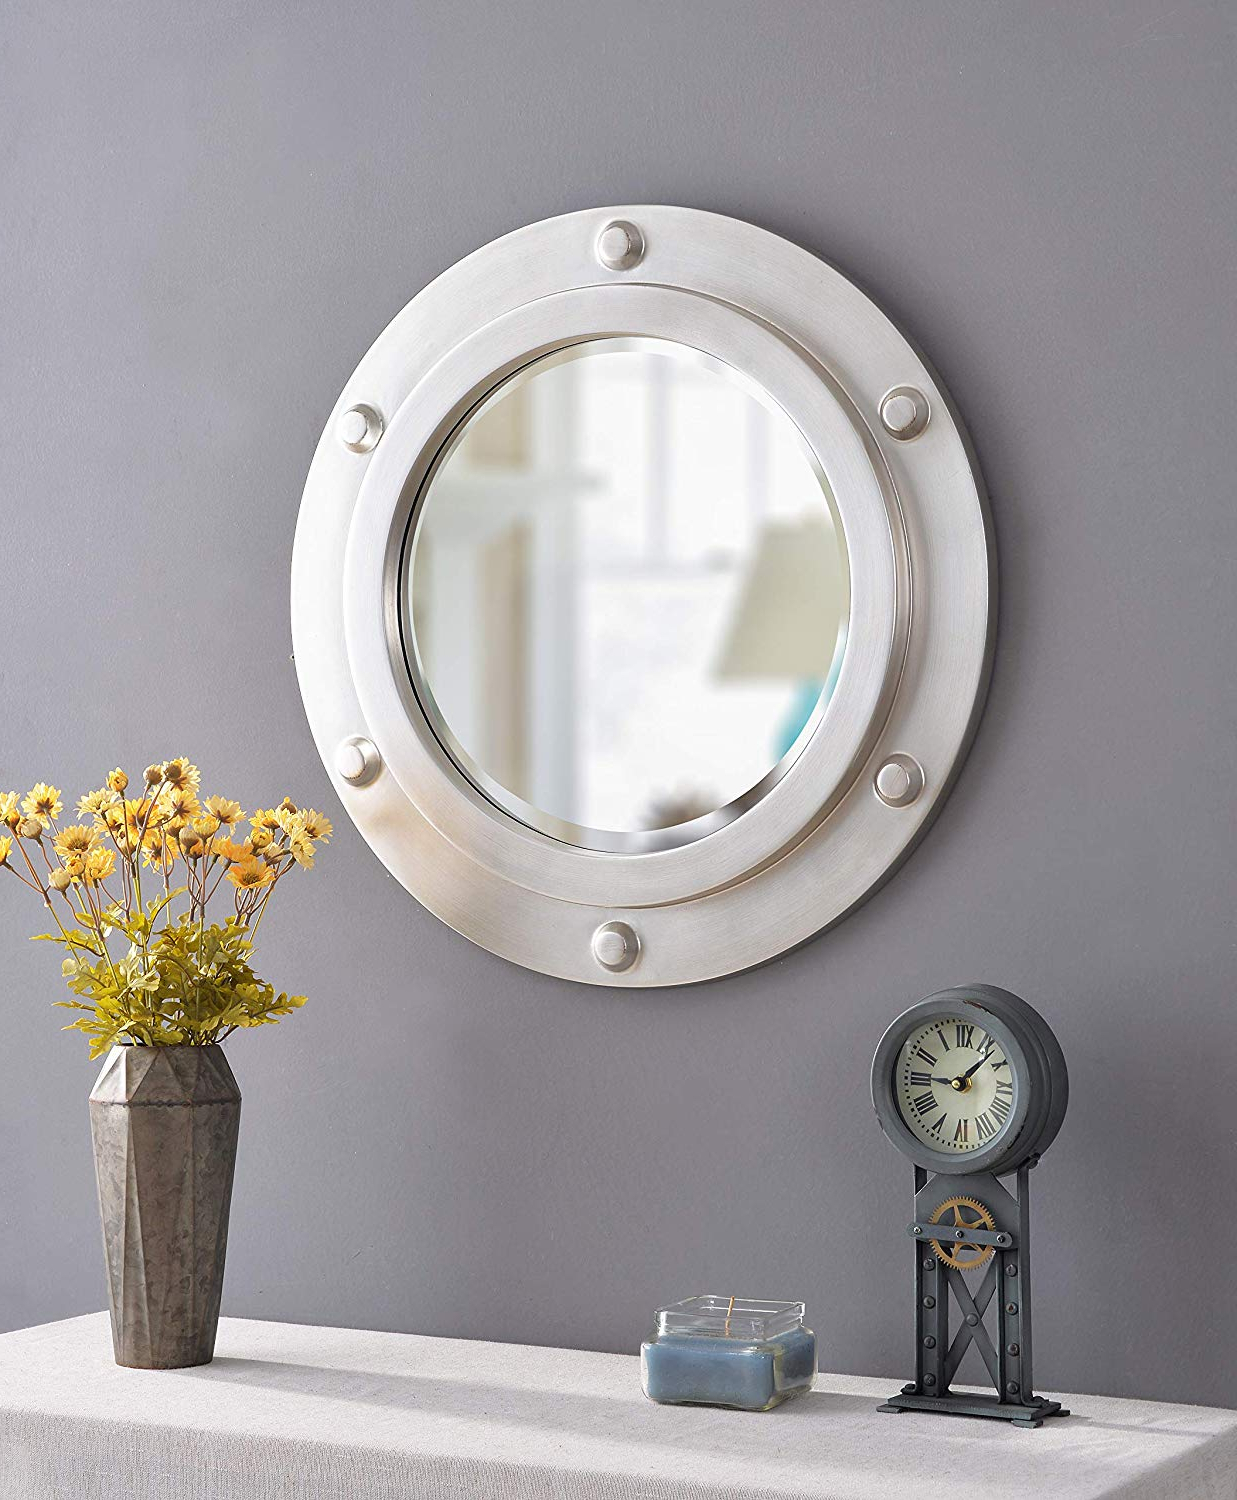 Kenroy Home Portside Wall Mirror, 24 Inch Diameter, Weathered Steel Intended For Famous Porthole Wall Mirrors (Gallery 17 of 20)